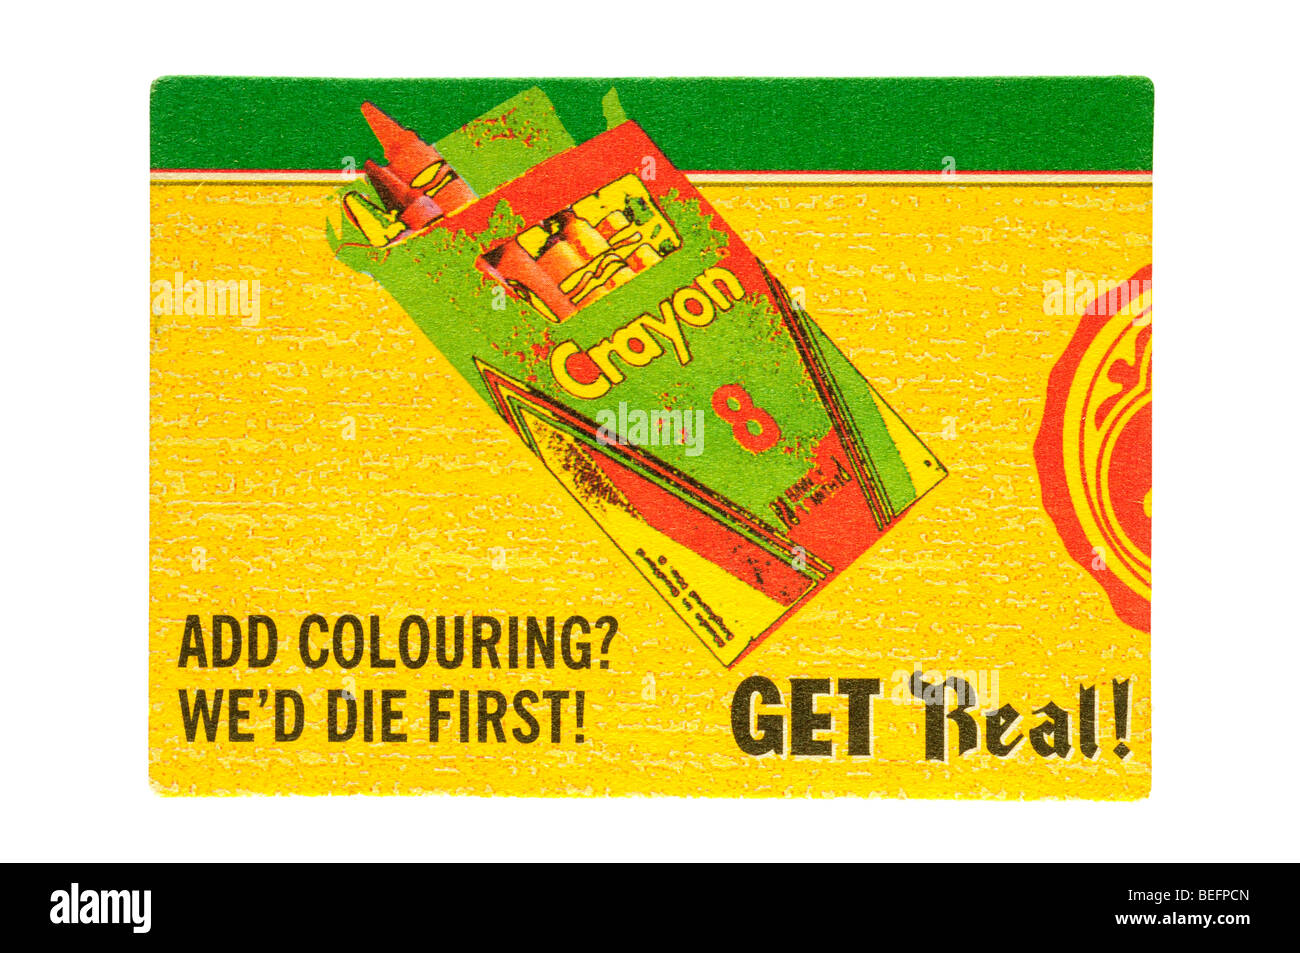 crayon 8 adsd colouring wed die first get real - Stock Image